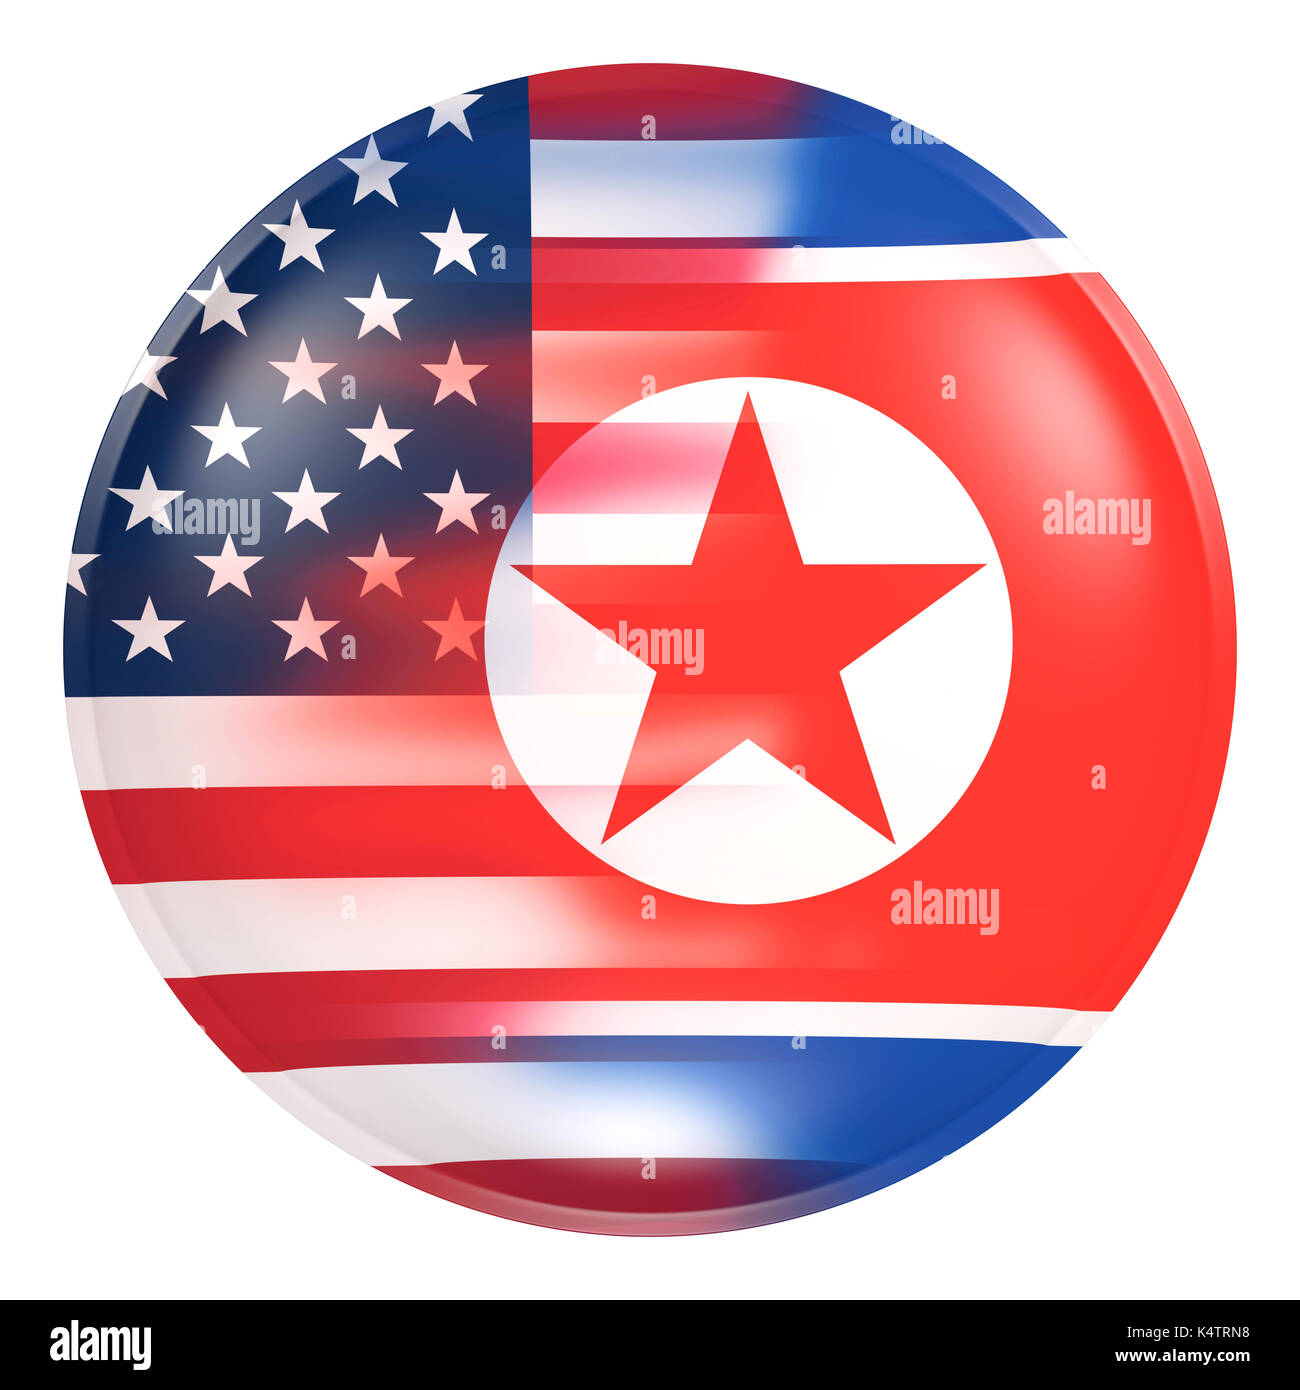 3d rendering of Korea and United States of America flags on a button in white background. Concept of nuclear conflict. - Stock Image